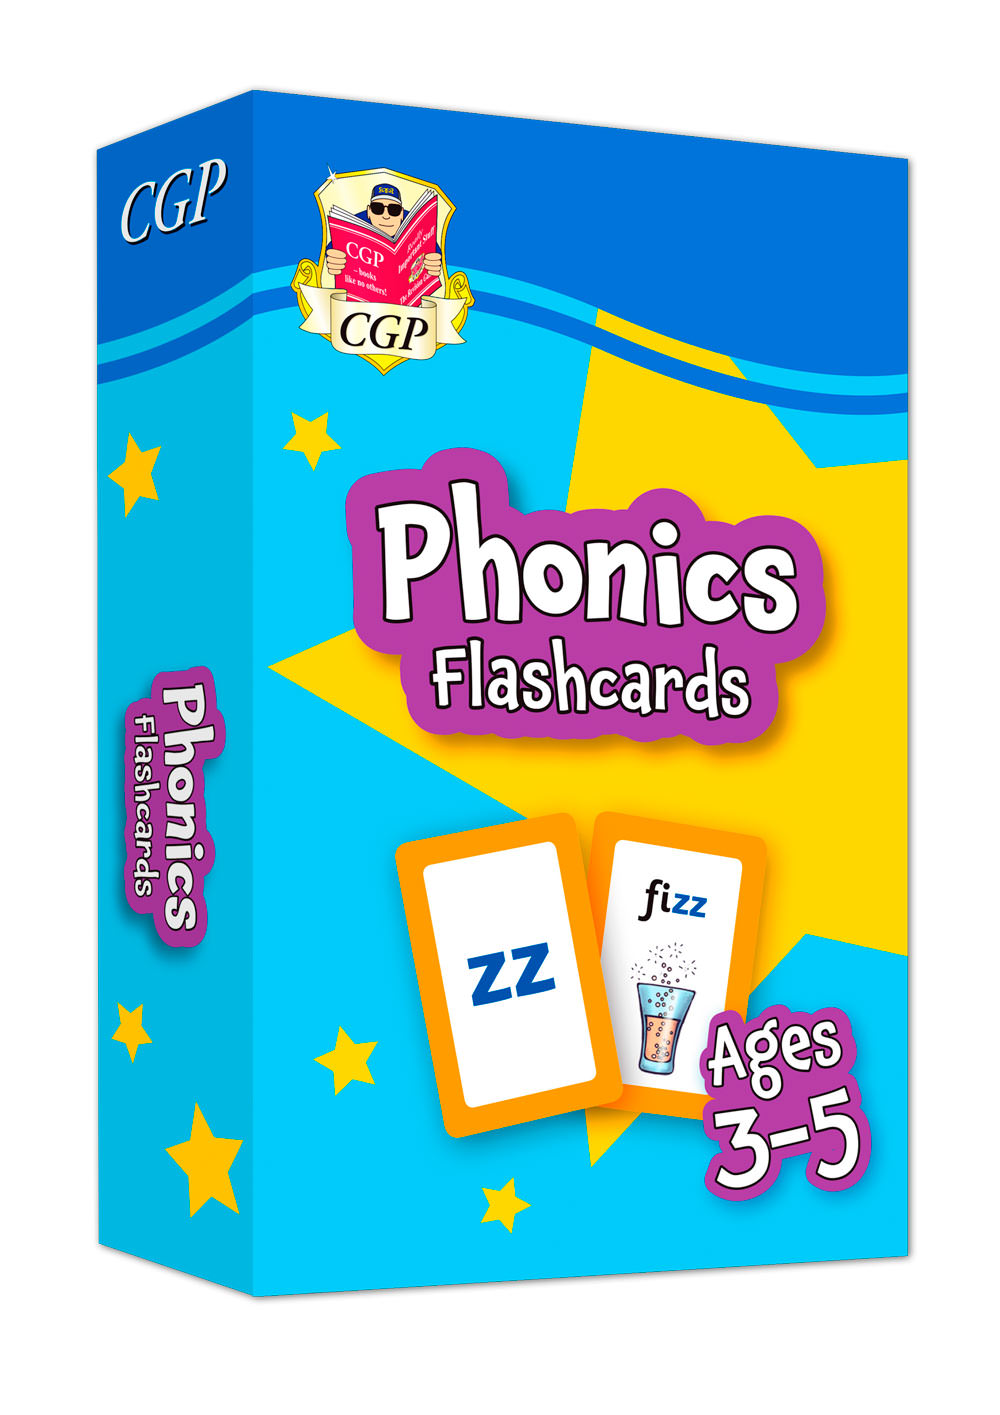 EPFOF01 - New Phonics Home Learning Flashcards for Ages 3-5